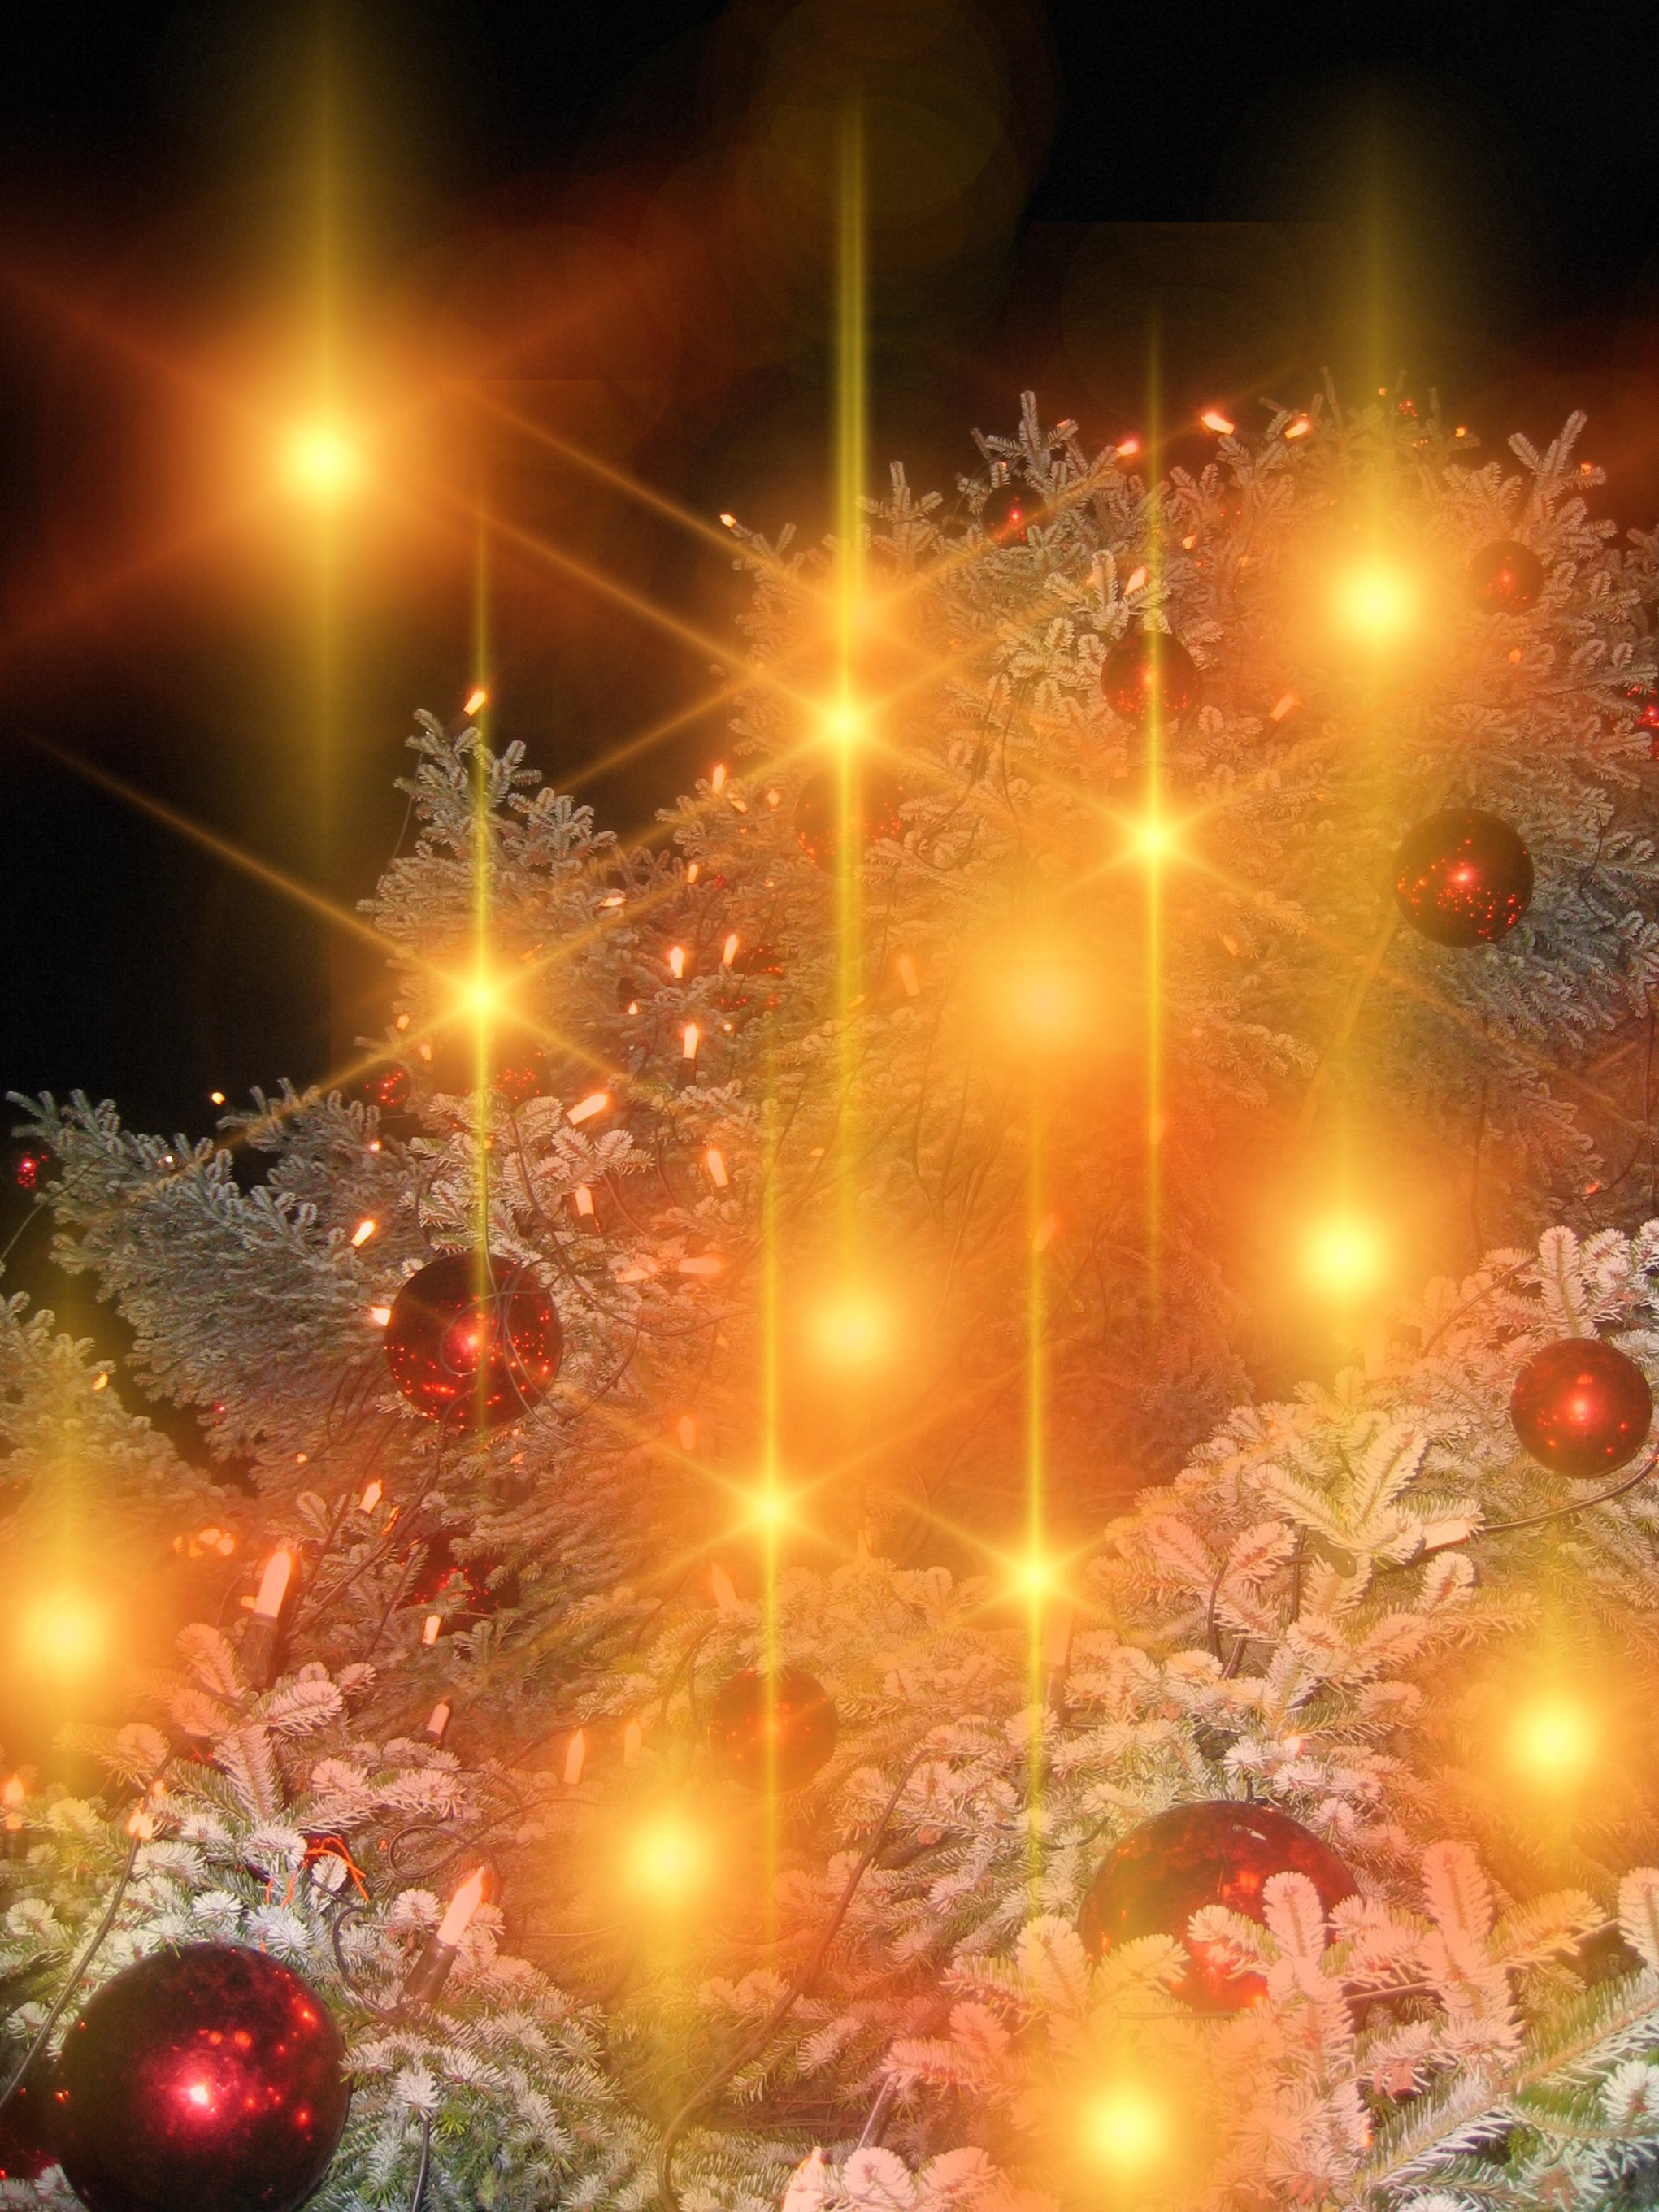 Illustration Decoration 50 Great Free Pictures For Christmas Wallpaper, Background